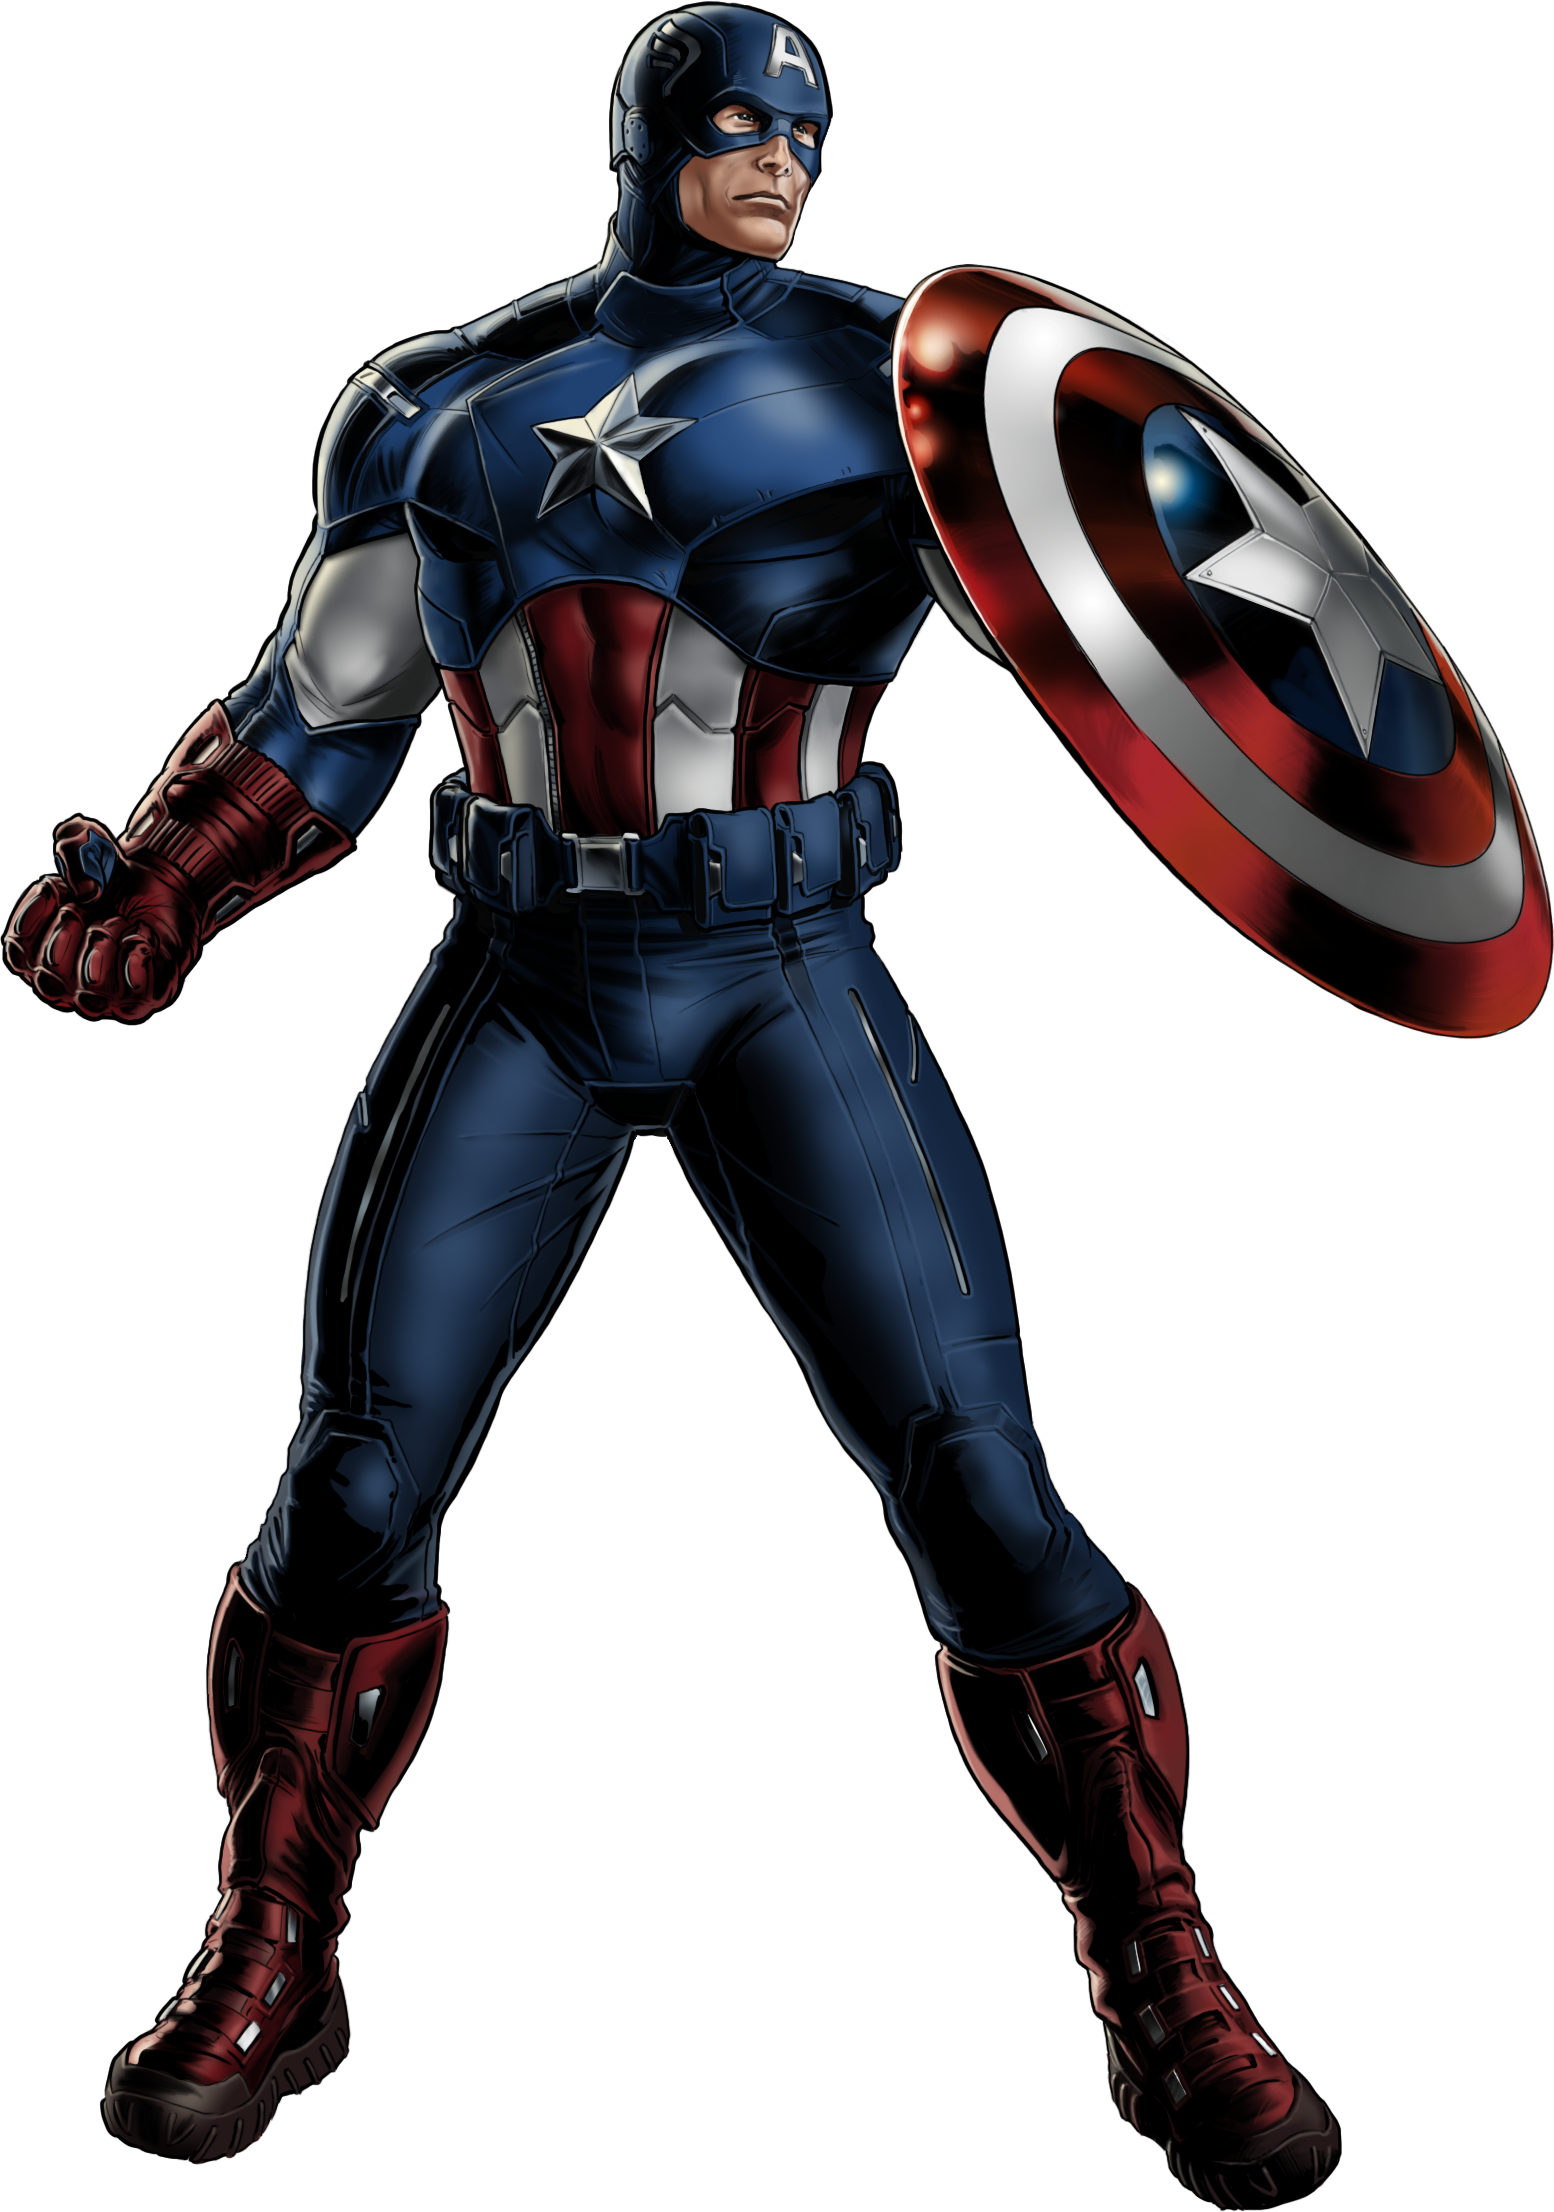 pin de agustin mendez en super heros pinterest marvel avengers alliance captain america y. Black Bedroom Furniture Sets. Home Design Ideas